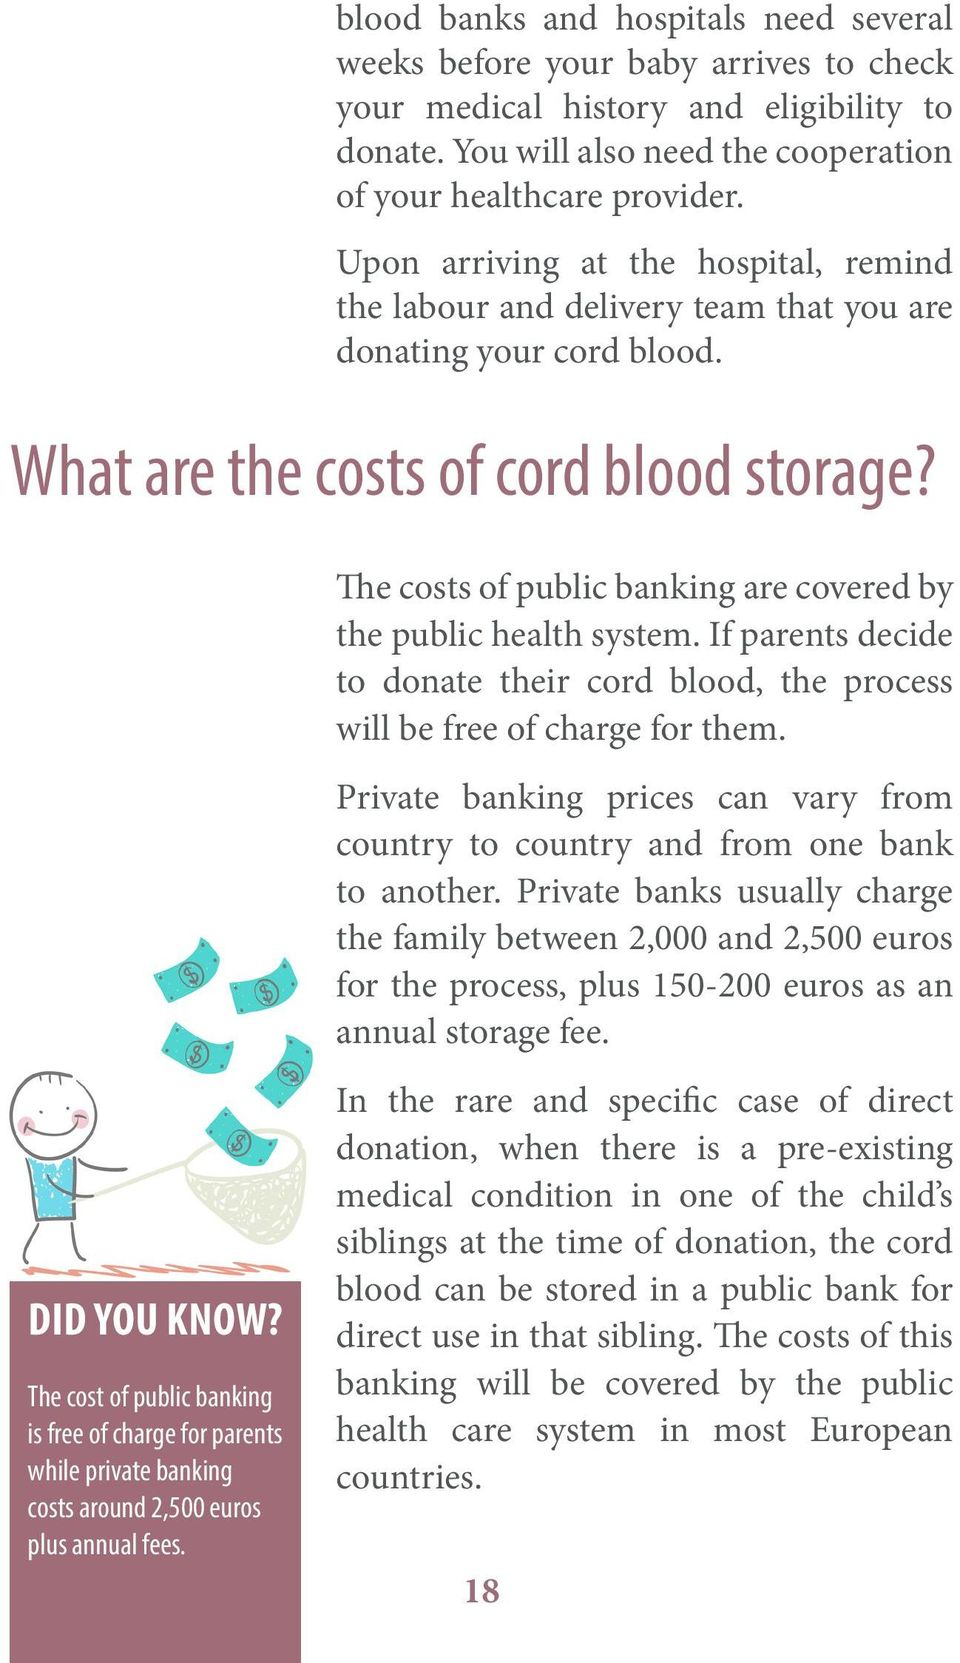 The costs of public banking are covered by the public health system. If parents decide to donate their cord blood, the process will be free of charge for them.